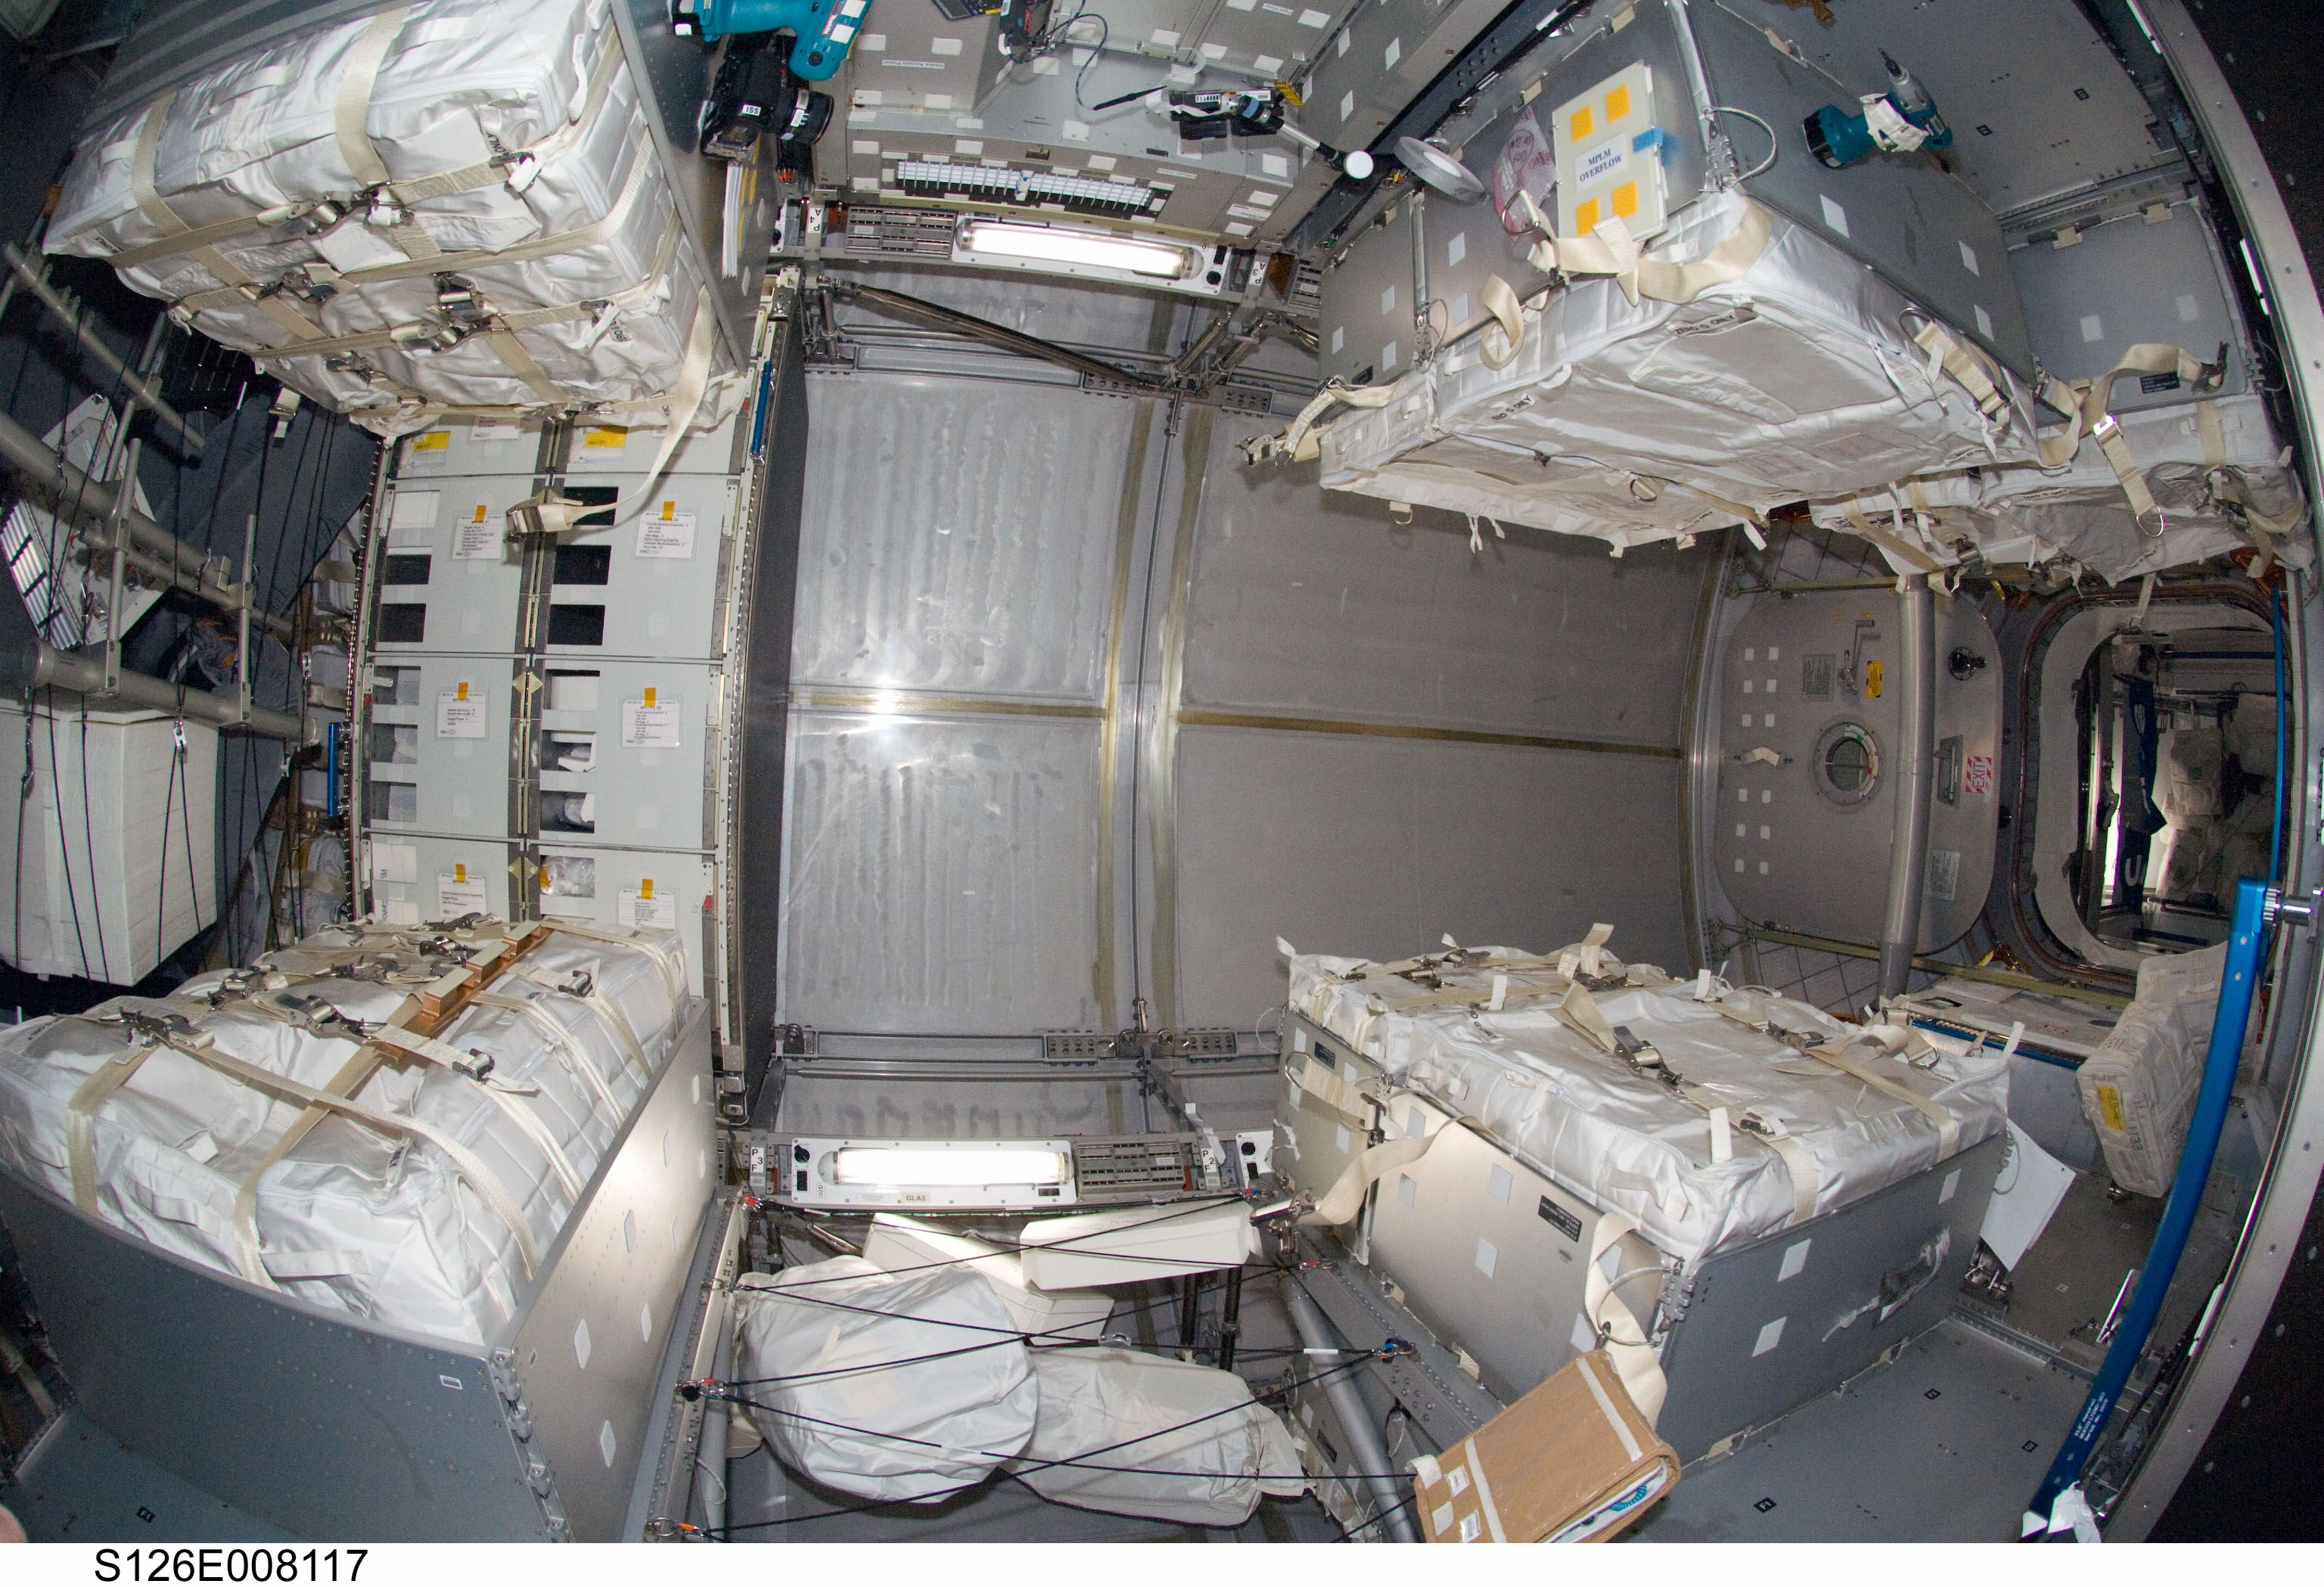 space shuttle living quarters -#main